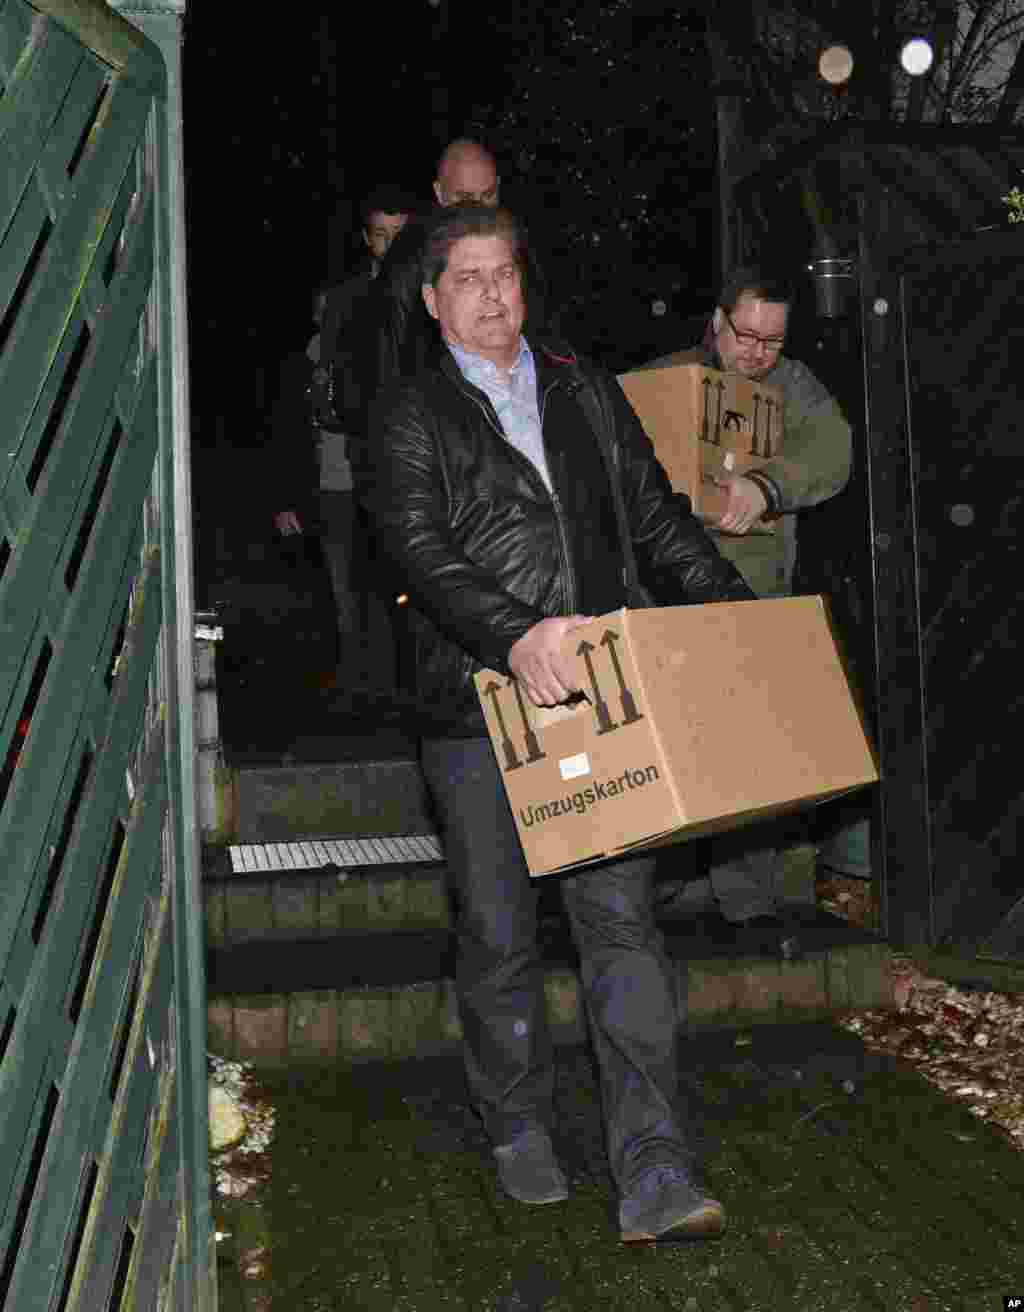 Investigators carry boxes from the apartment of Germanwings co-pilot Andreas Lubitz, in Dusseldorf, Germany, March 26, 2015.